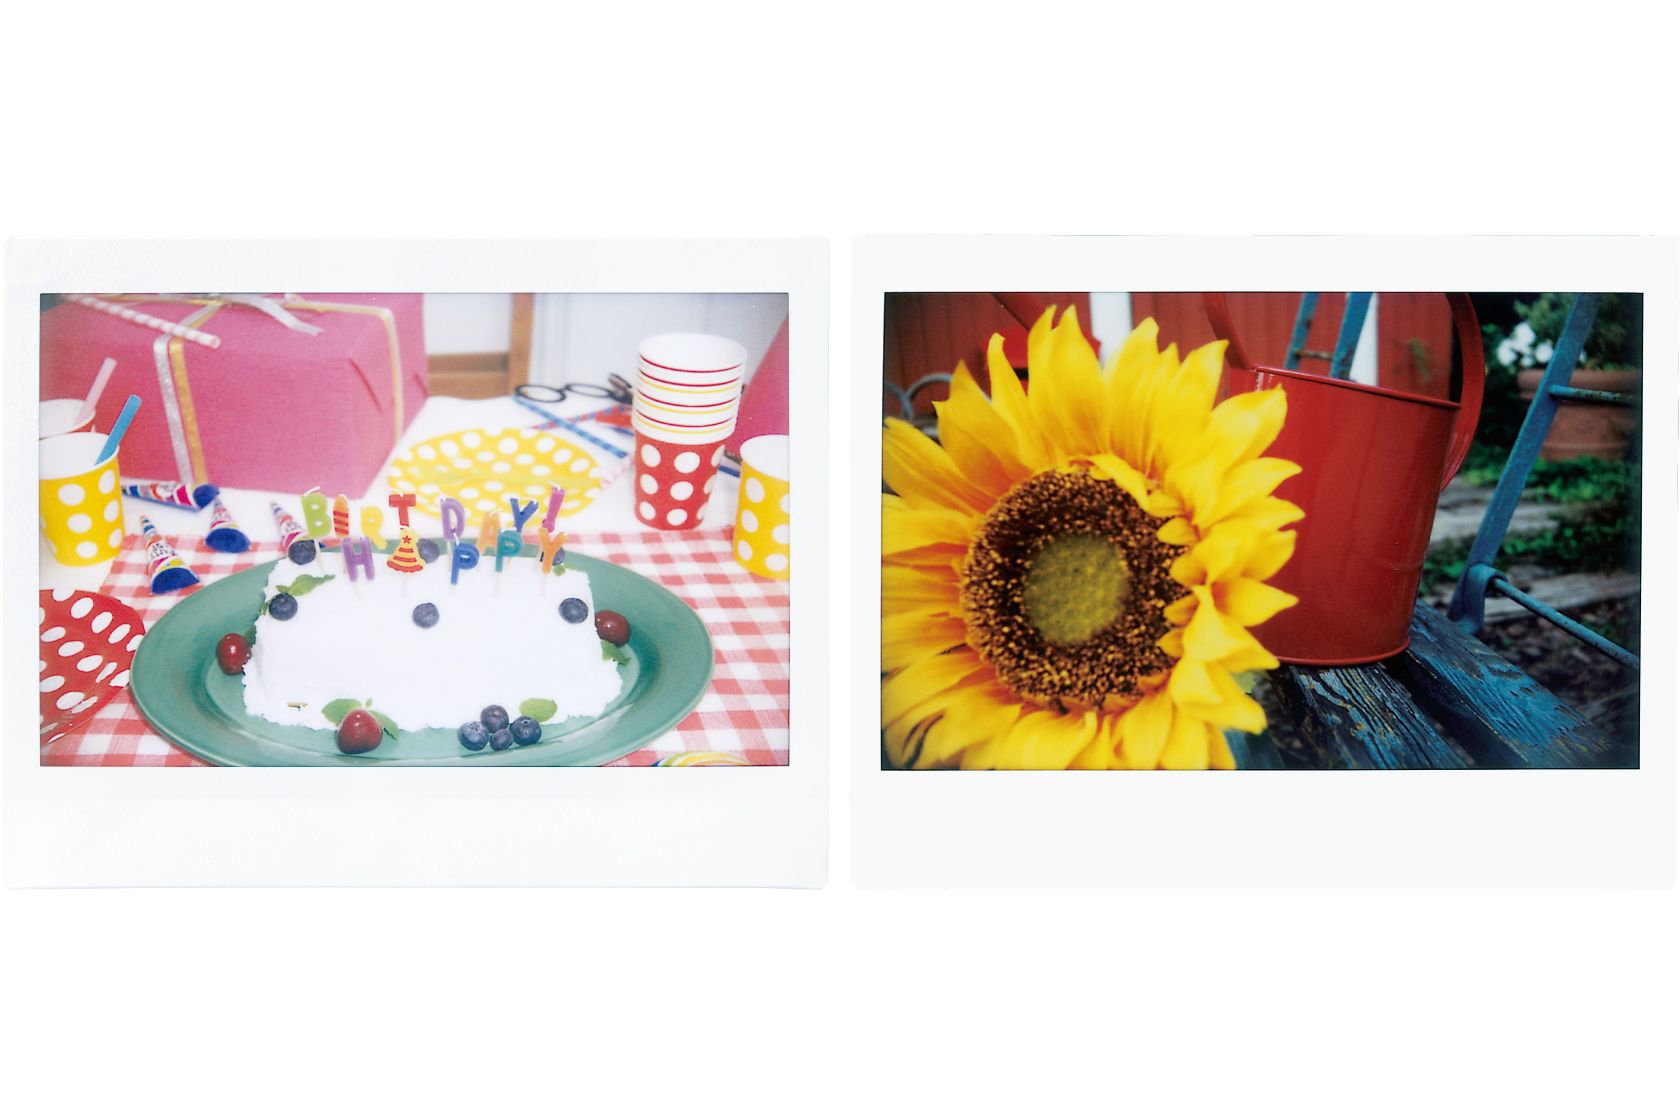 [photo] Close up of a cake and a sunflower using the Close-up lens on the Instax WIDE 300